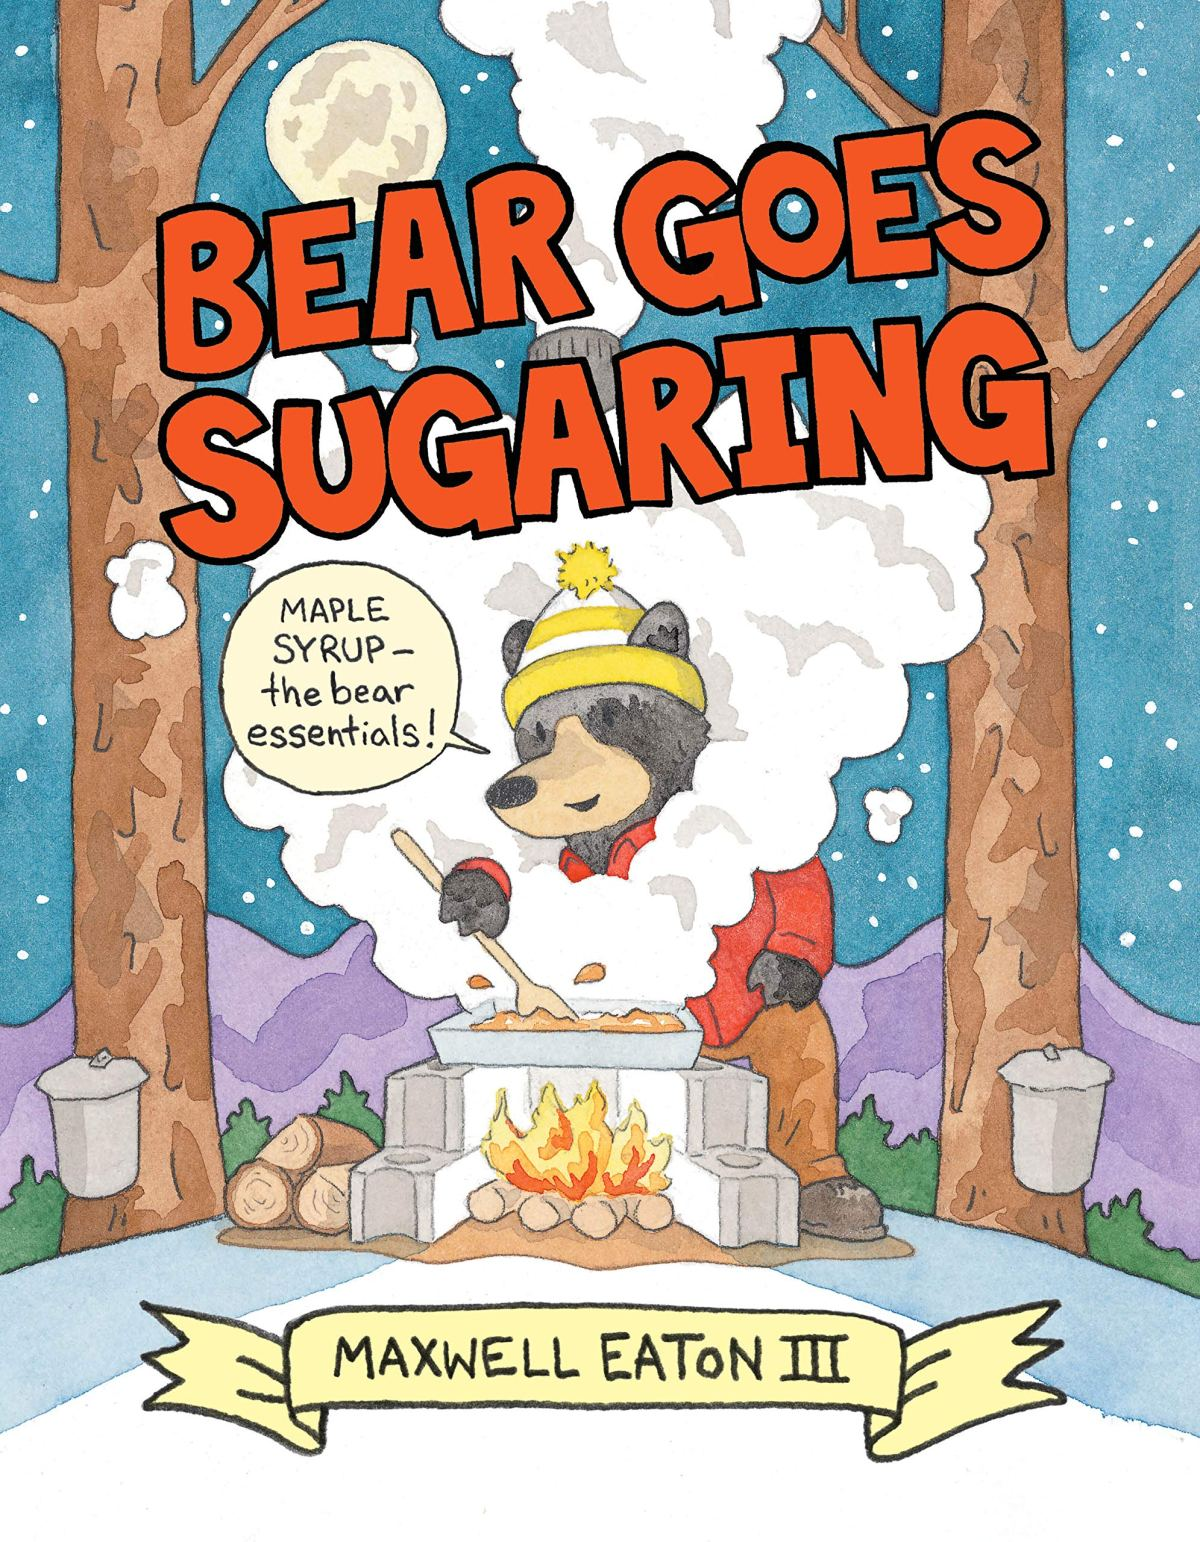 bear goes sugaring cover